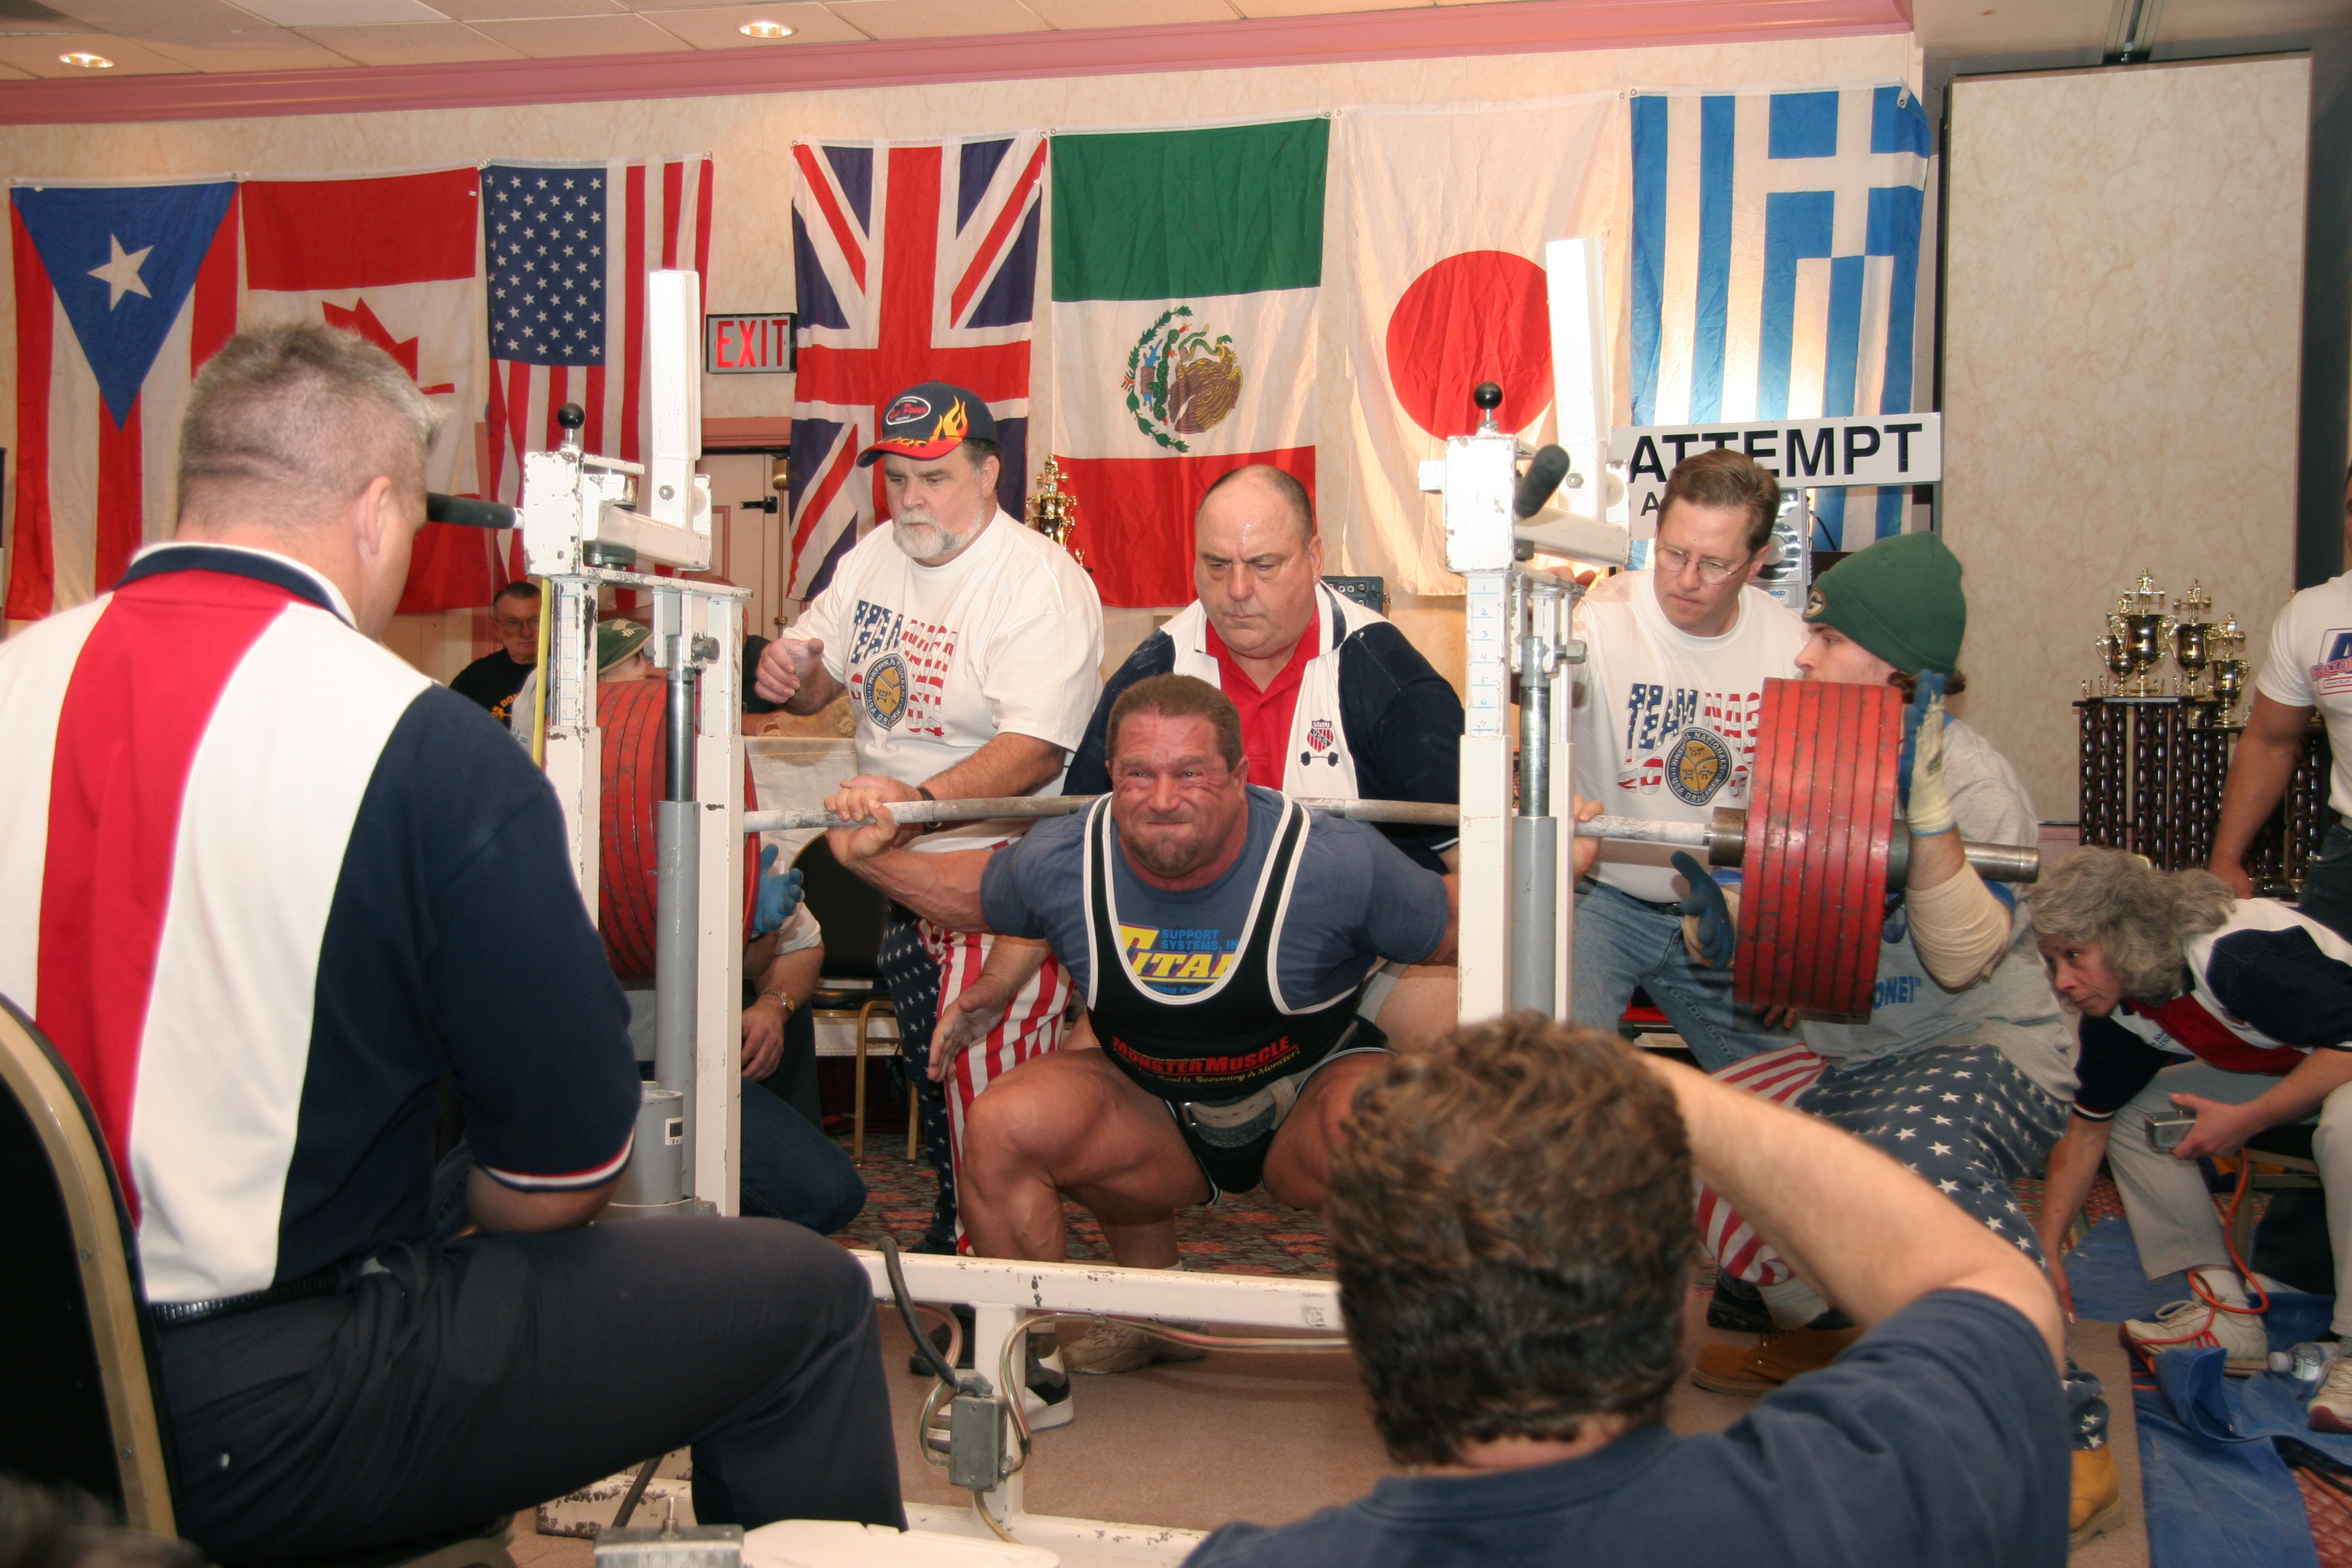 The Varieties of Human Strength - Absolute, Explosive, Sustained